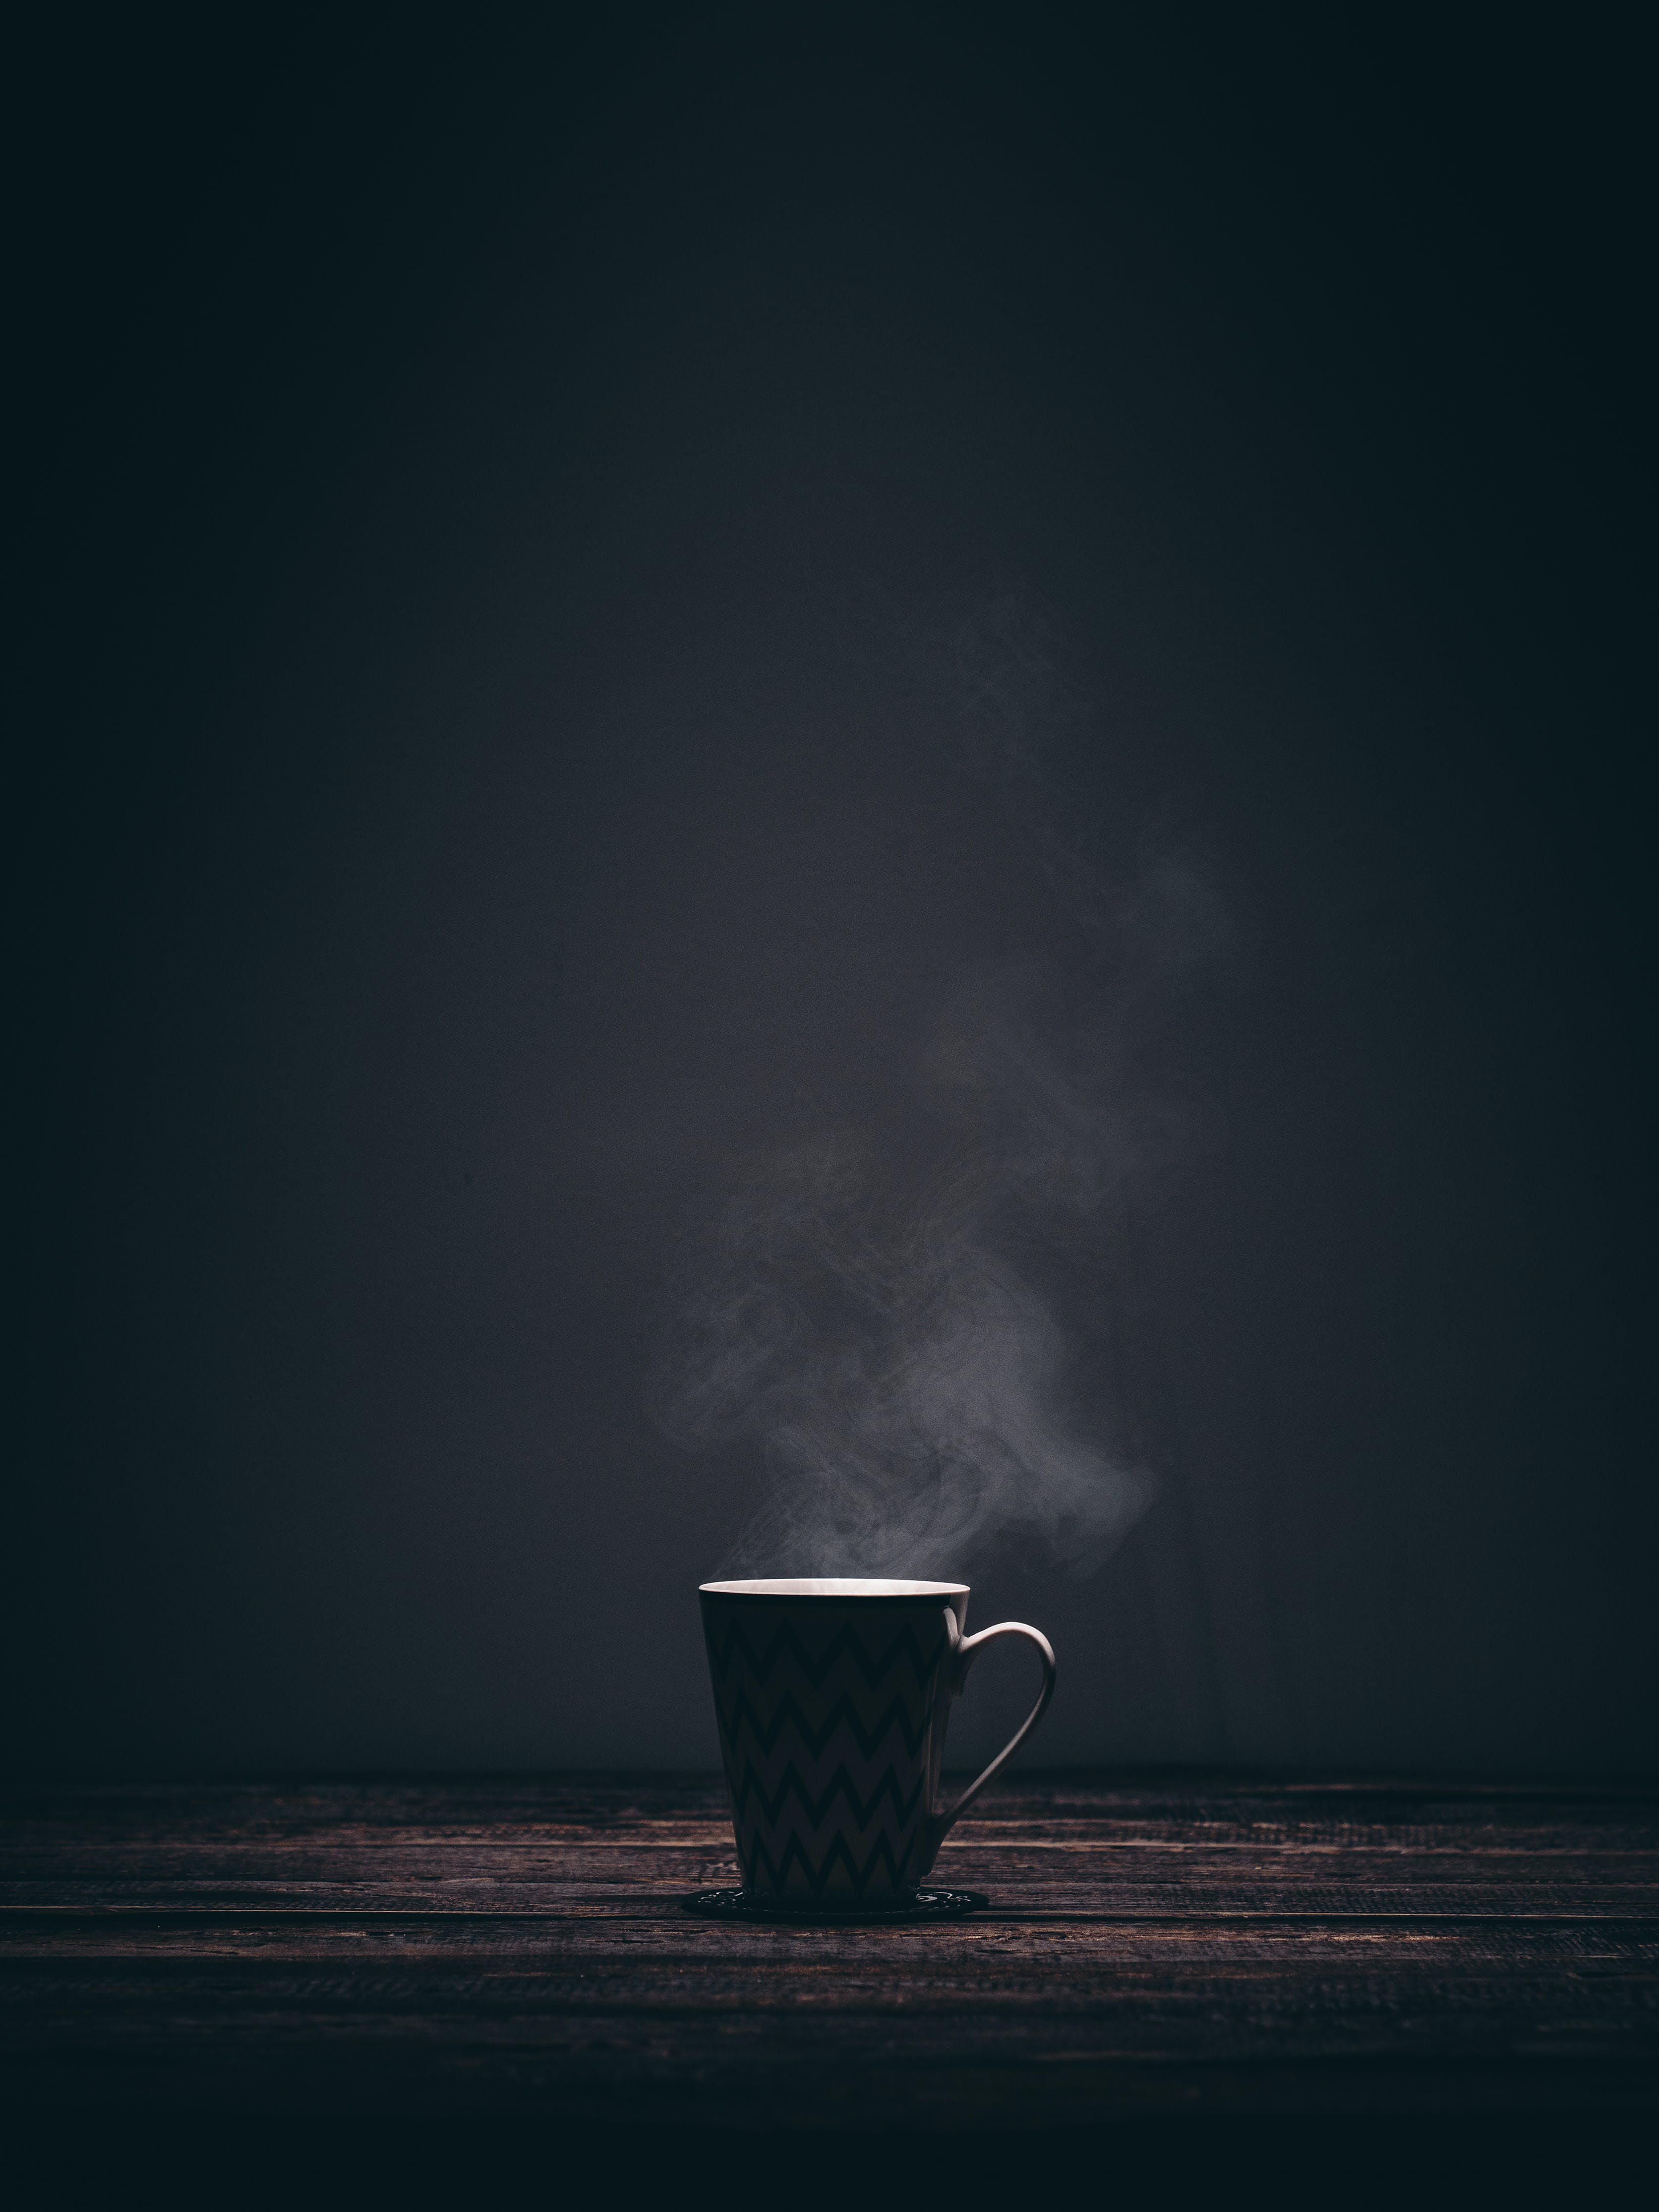 Free stock photo of coffee, cup, mug, drink